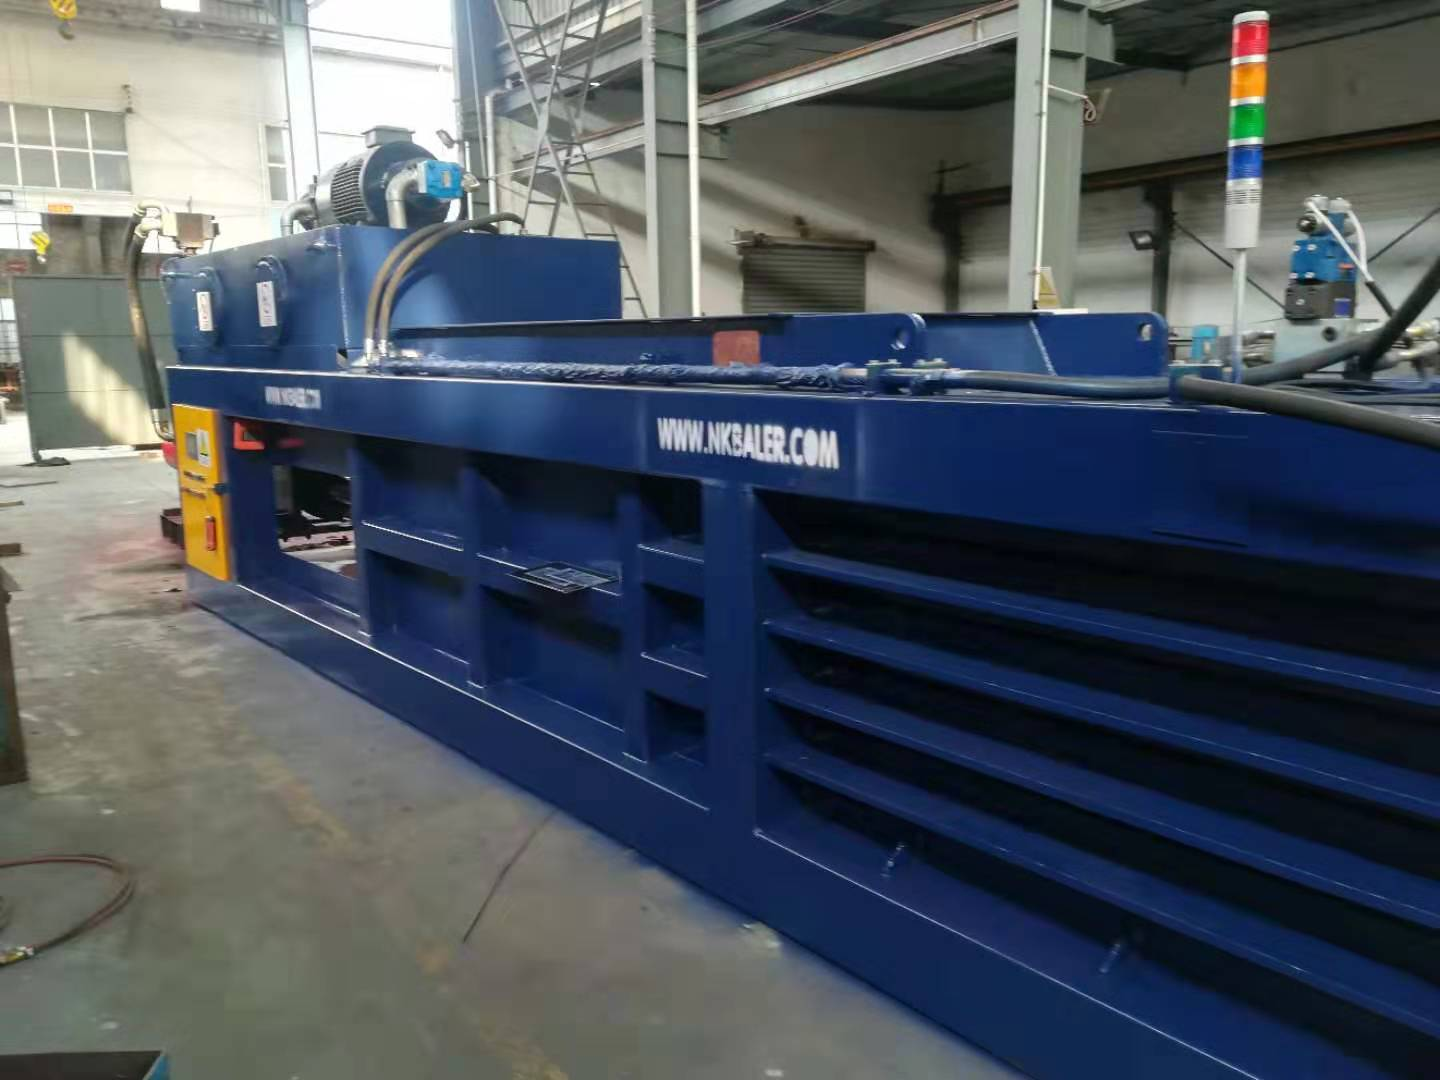 waste carton baler Newspaper baler